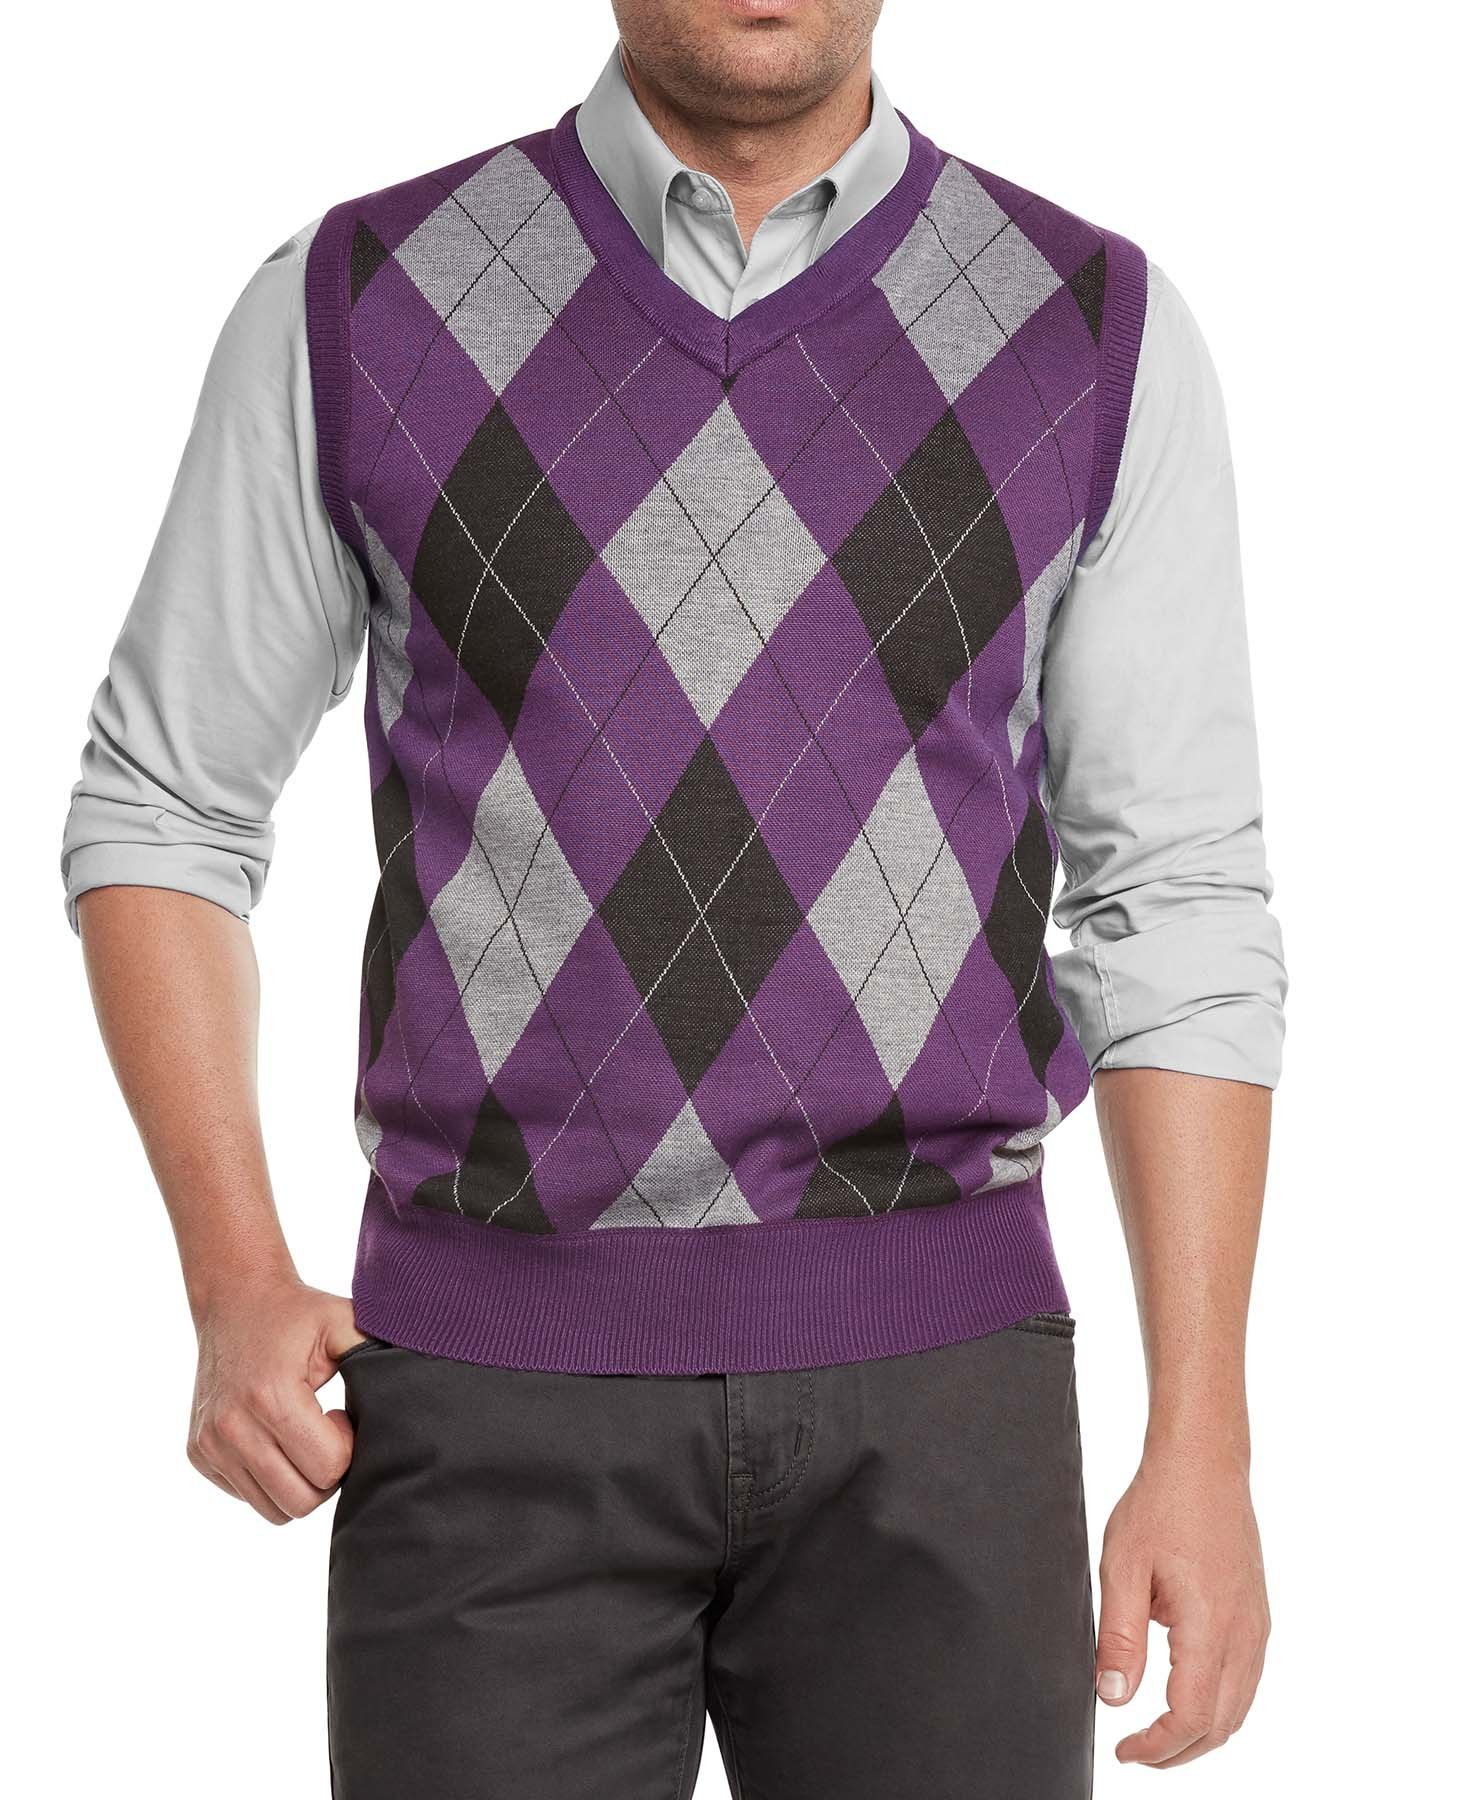 True Rock Men's Argyle V-Neck Sweater Vest-Purple/Blk/Gray-Large by True Rock